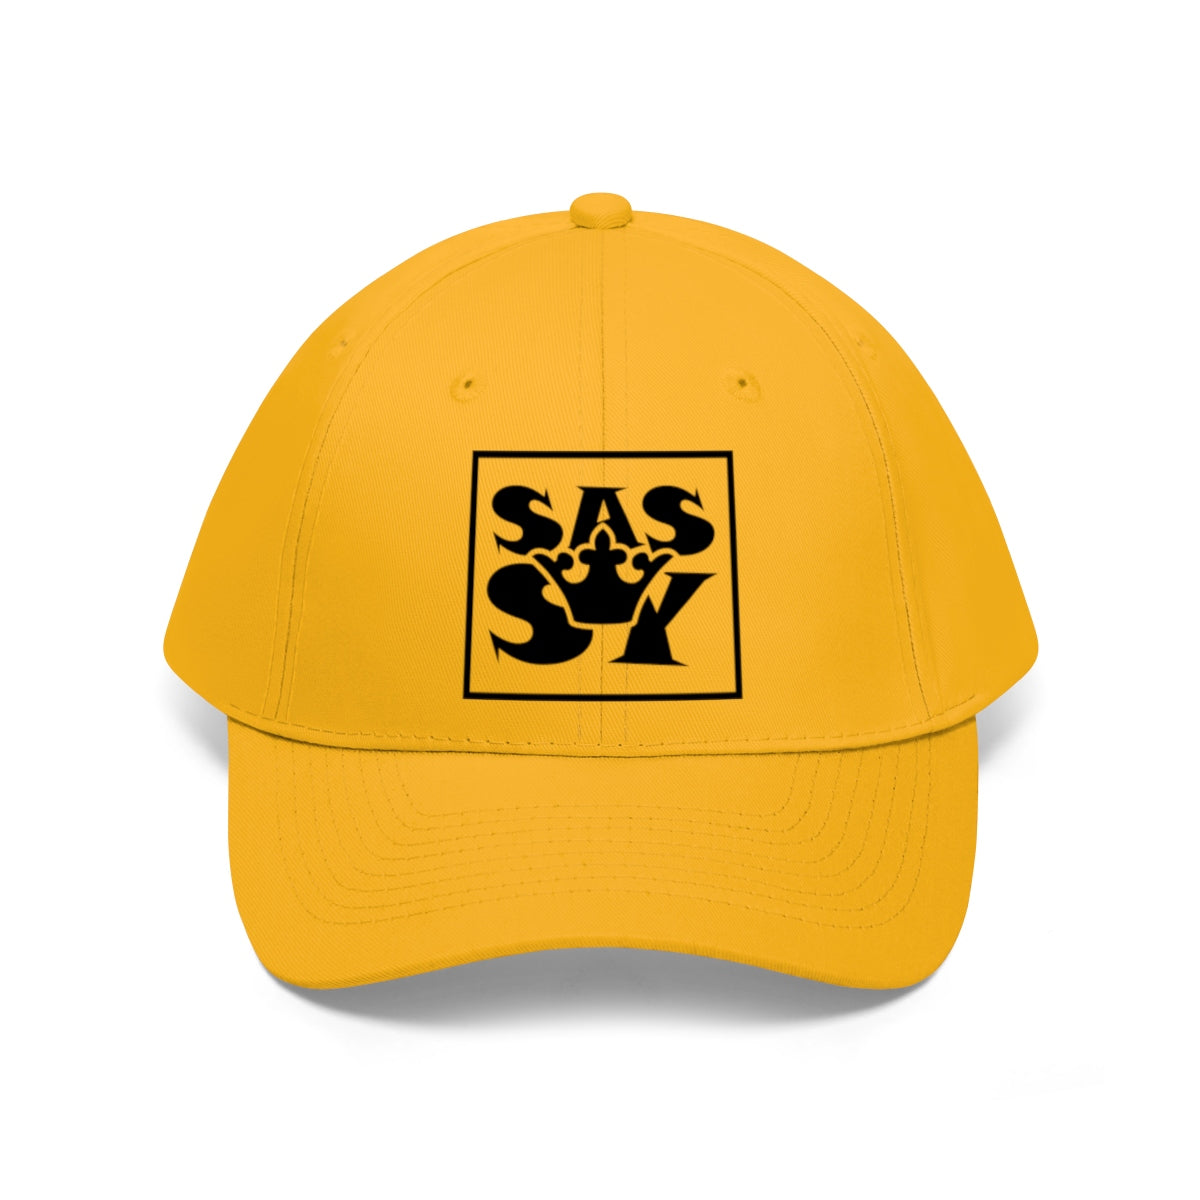 Sassy & Swag Collections - Sassy Queen Women's Twill Hat